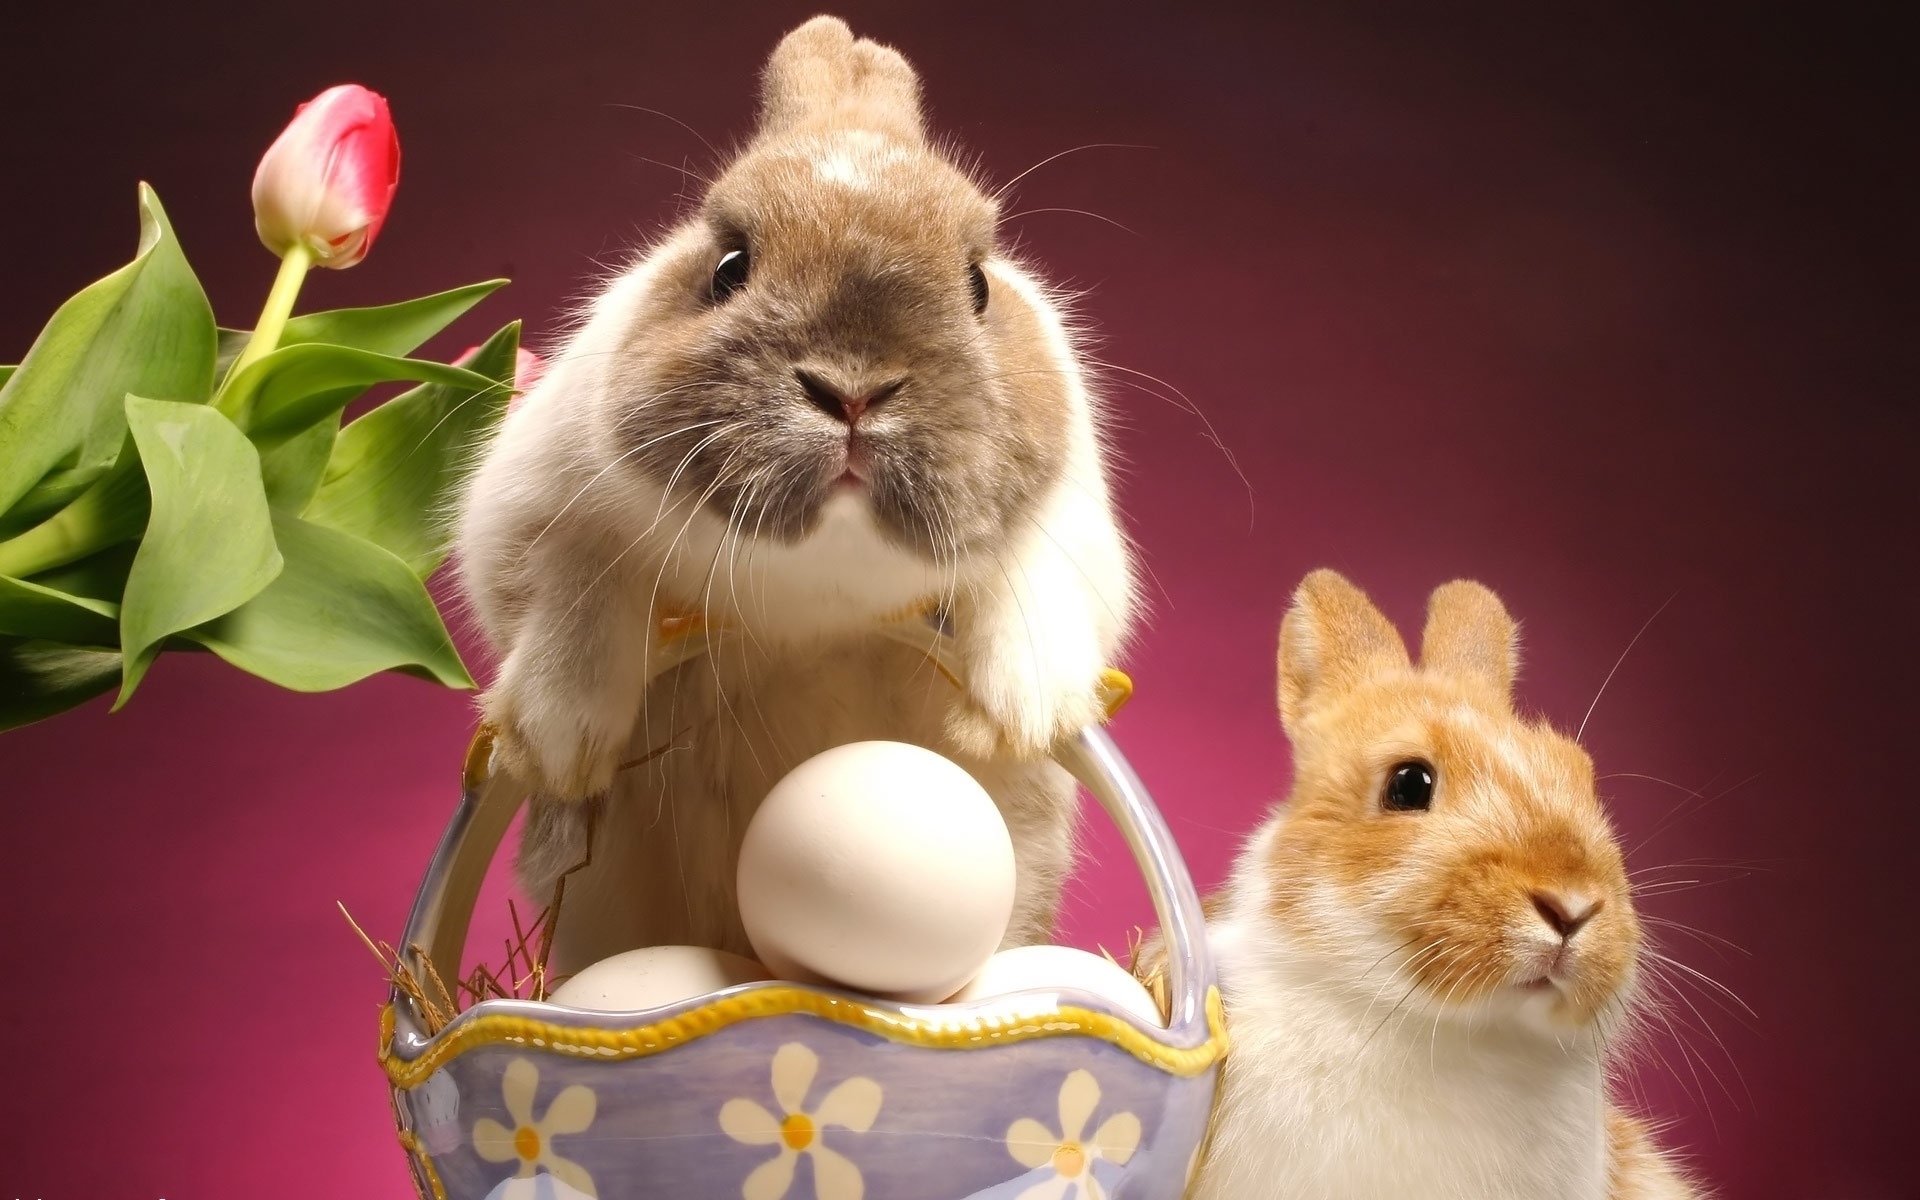 24071 download wallpaper Animals, Rabbits screensavers and pictures for free